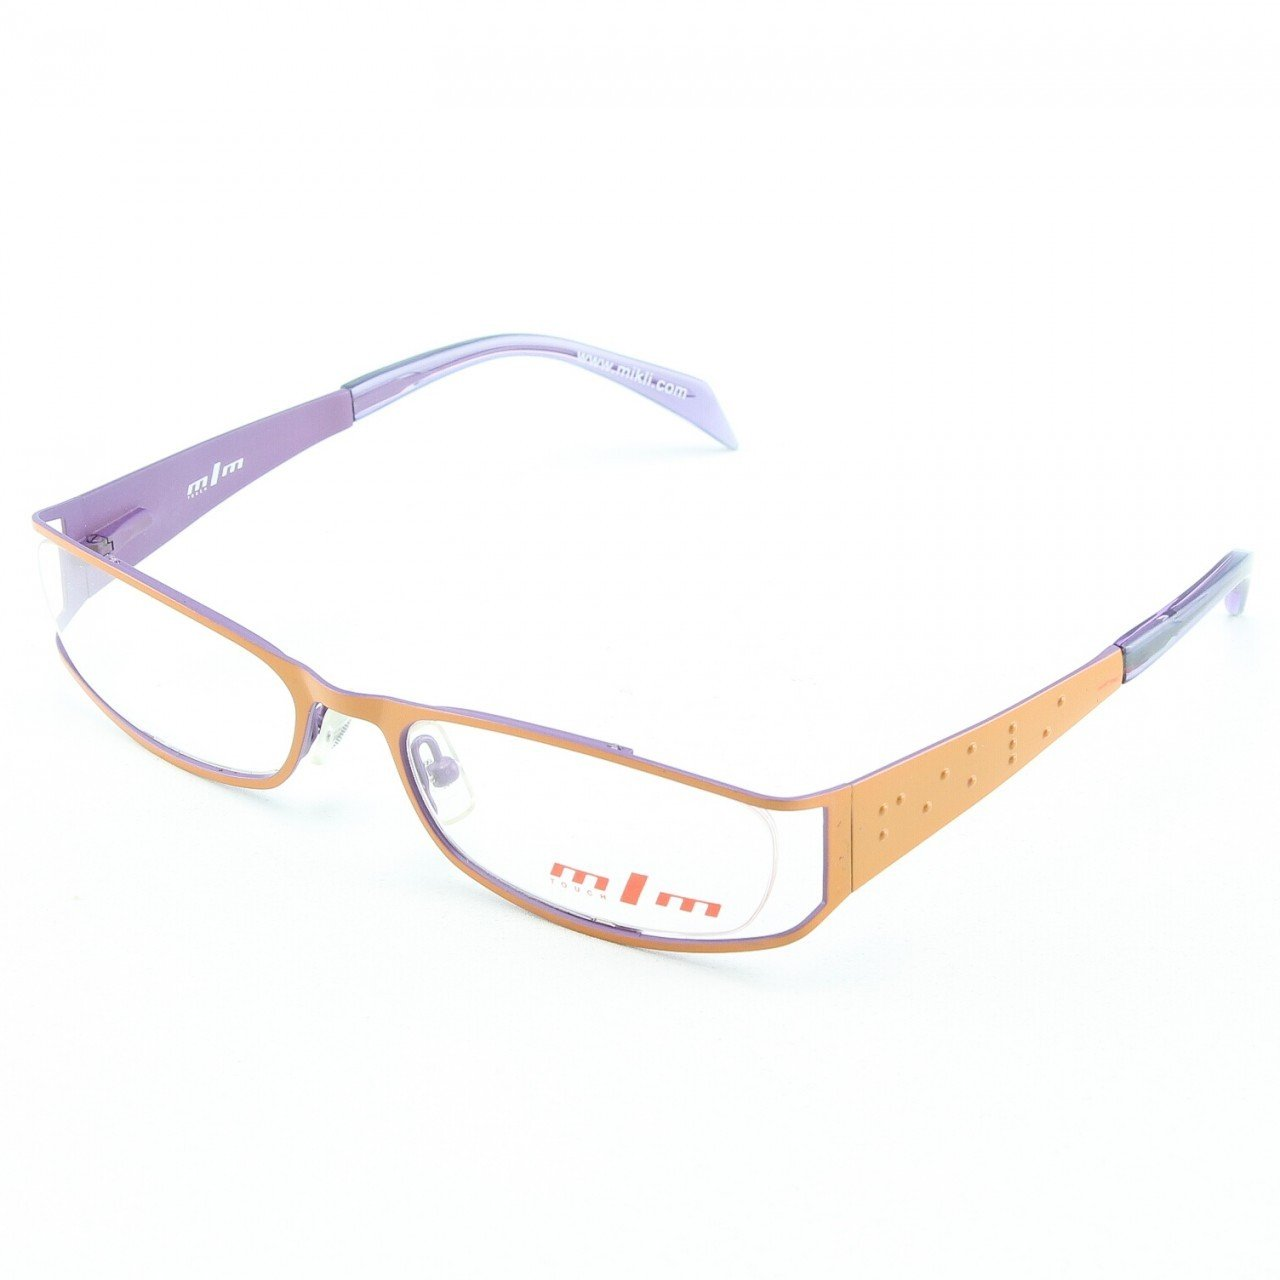 Alain Mikli Eyeglasses 660 02 Orange Lavander with Clear Lenses